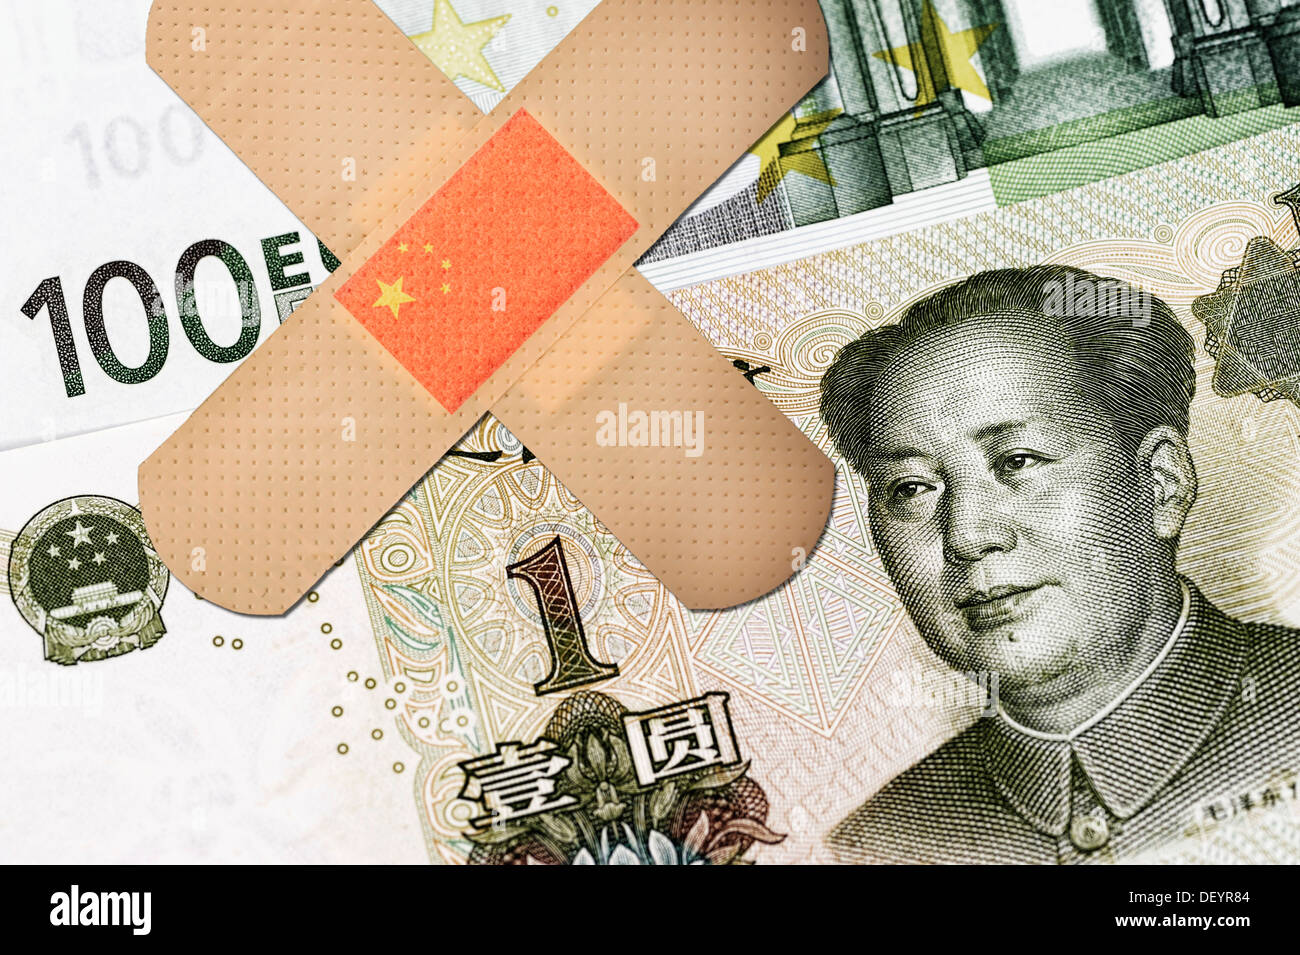 Banknotes, Chinese yuan and a 100 euro note with sticking plasters, symbolic image, China offered help for the euro Stock Photo